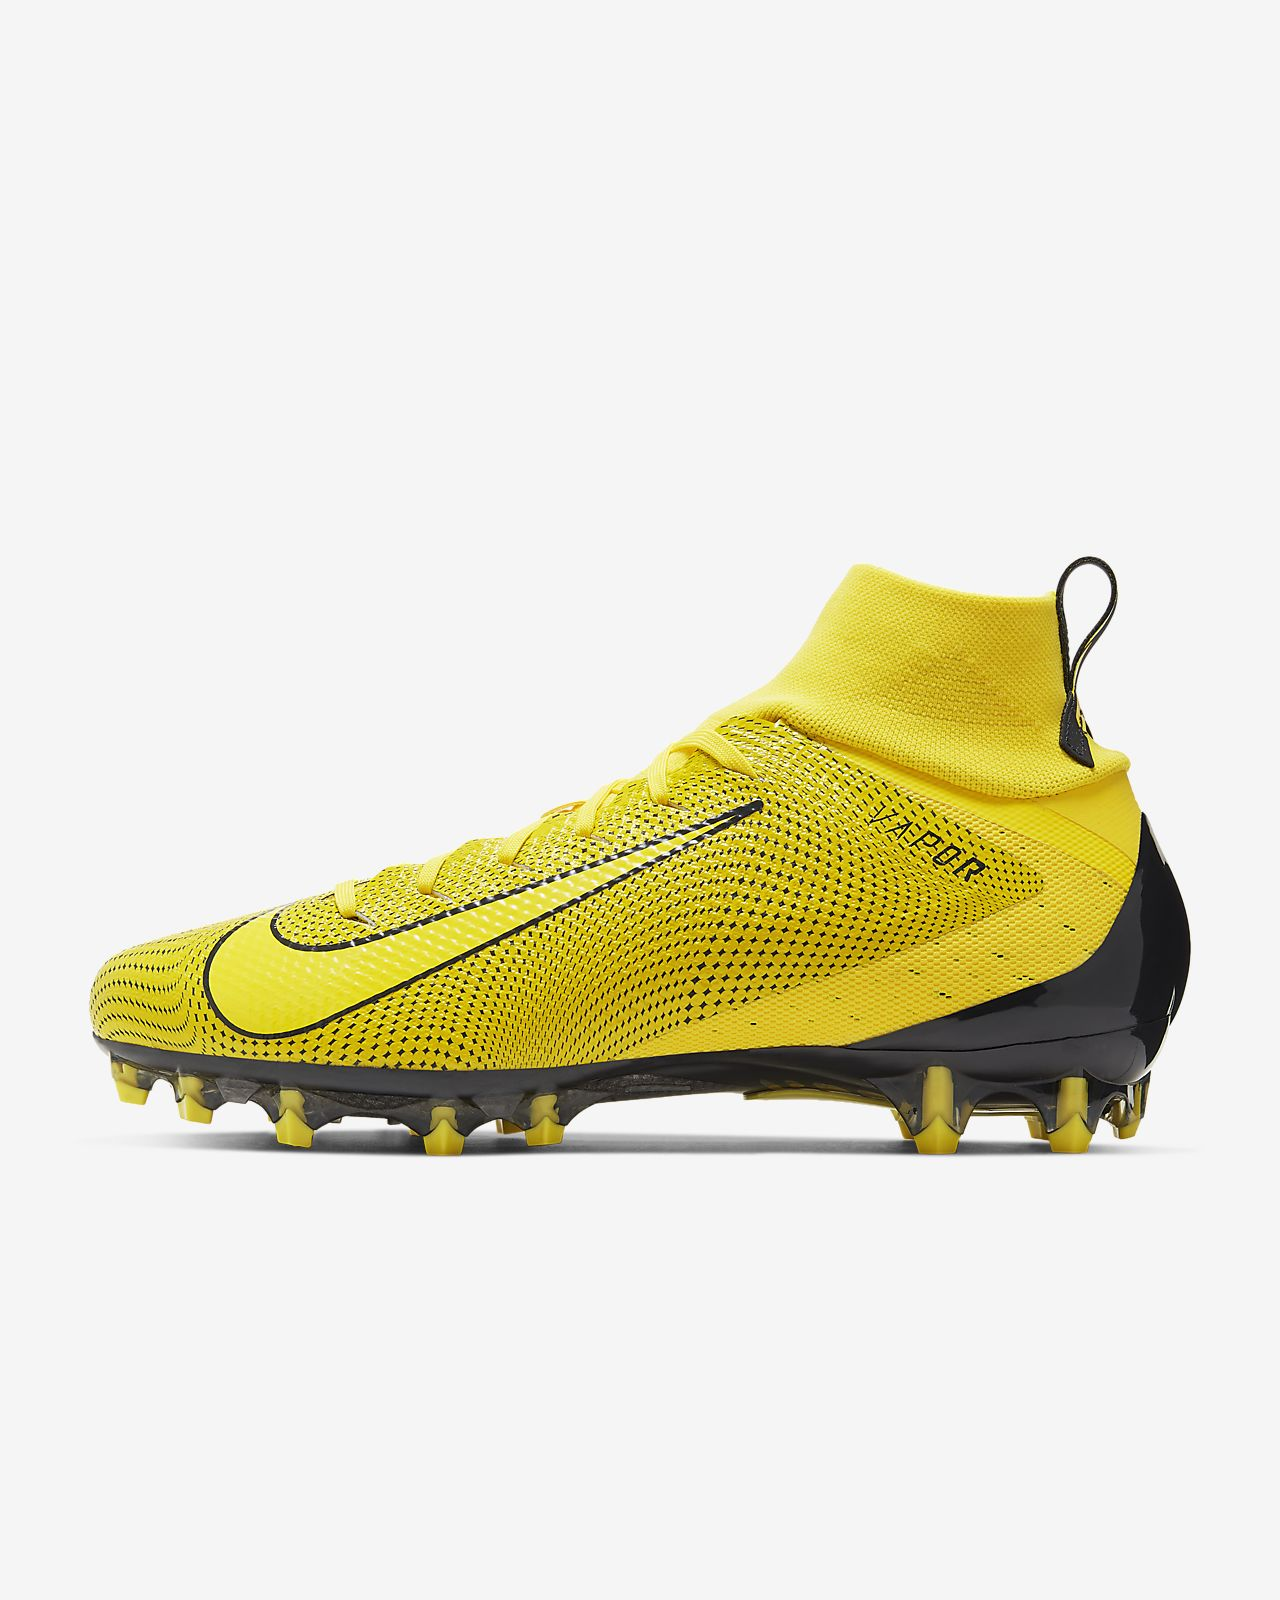 3fe753c979193 Nike Vapor Untouchable 3 Pro Football Cleat. Nike.com